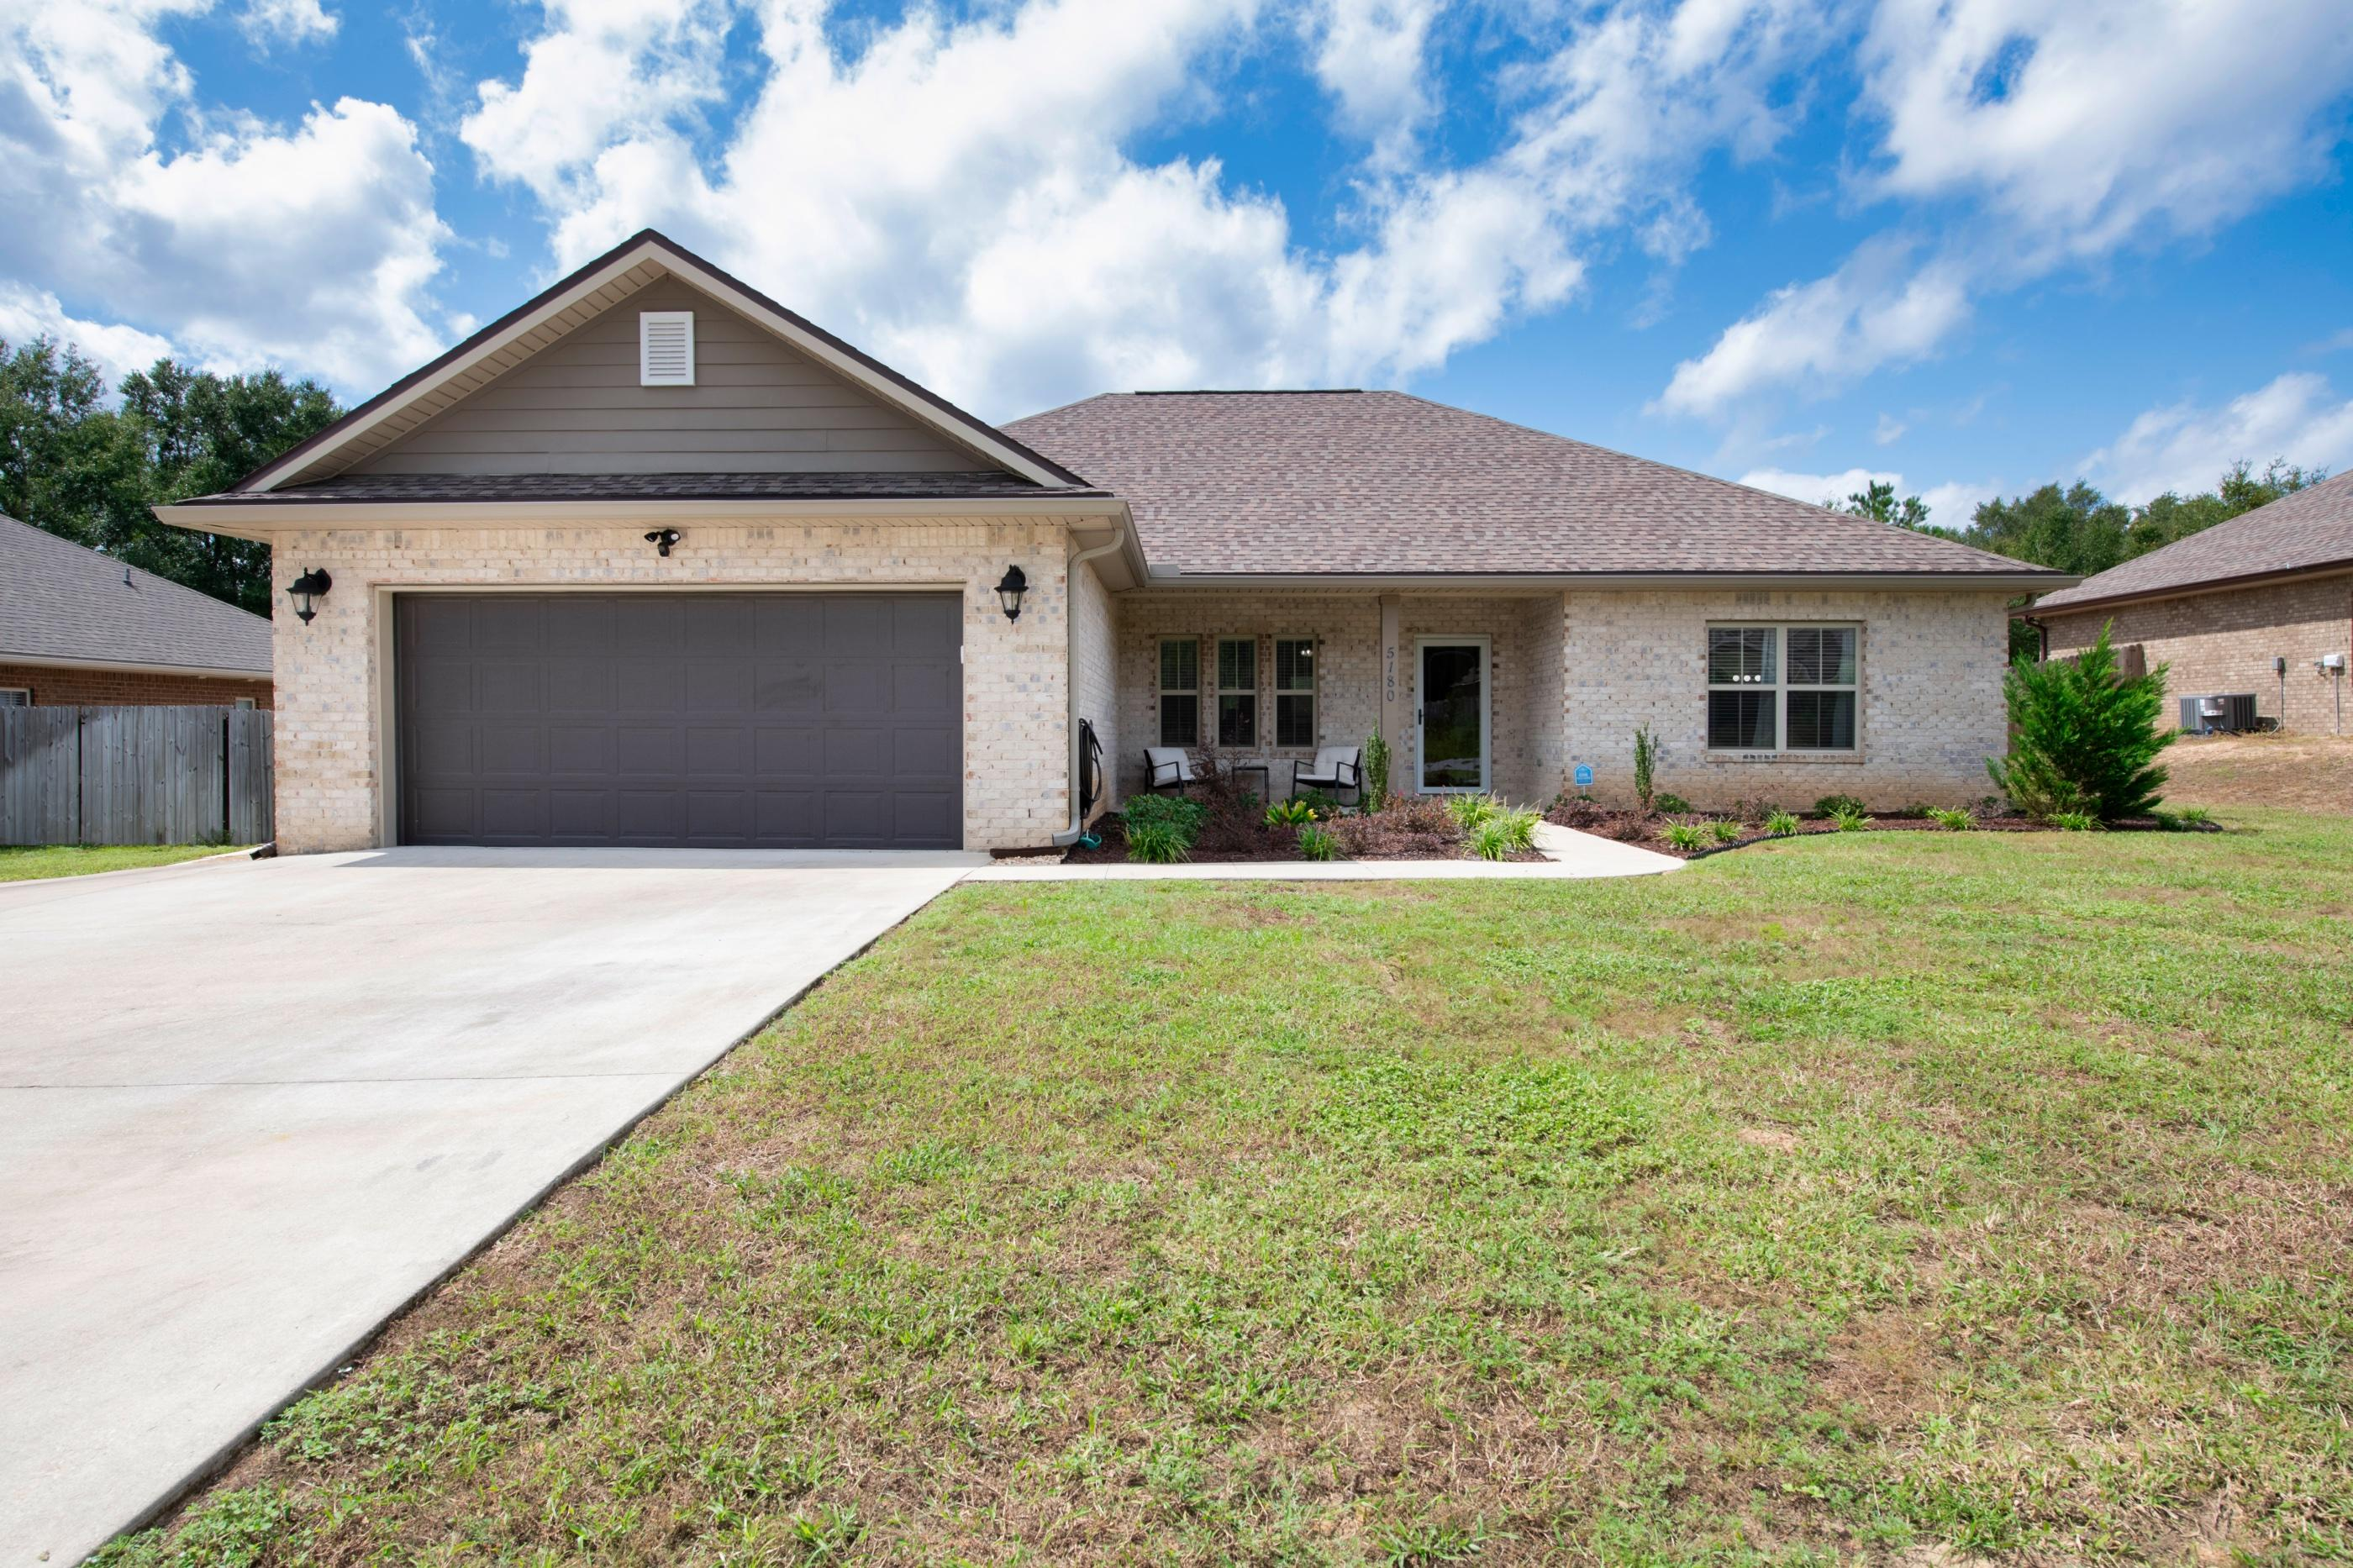 Photo of home for sale at 5180 Rabbit Run, Crestview FL